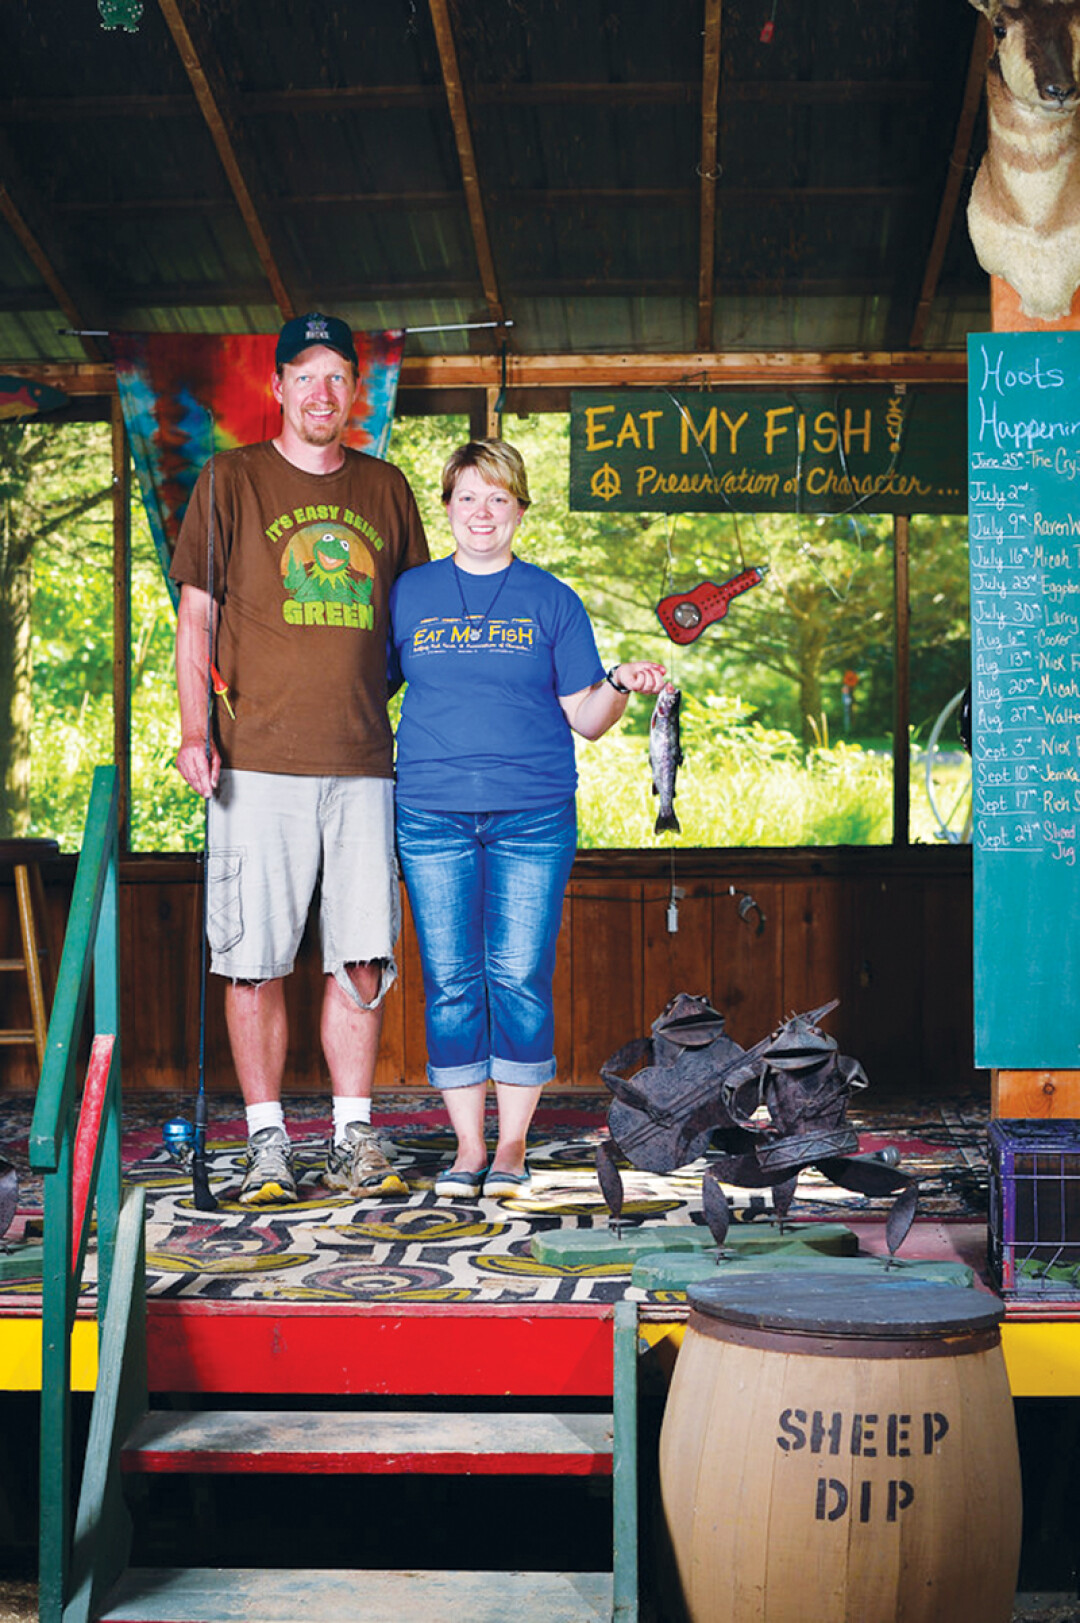 Jeremiah's Bullfrog Fish Farm co-owners Jeremiah and Jordan Fredrickson will carry on the Bullfrog legacy from former owner and founder Herby Radmann.